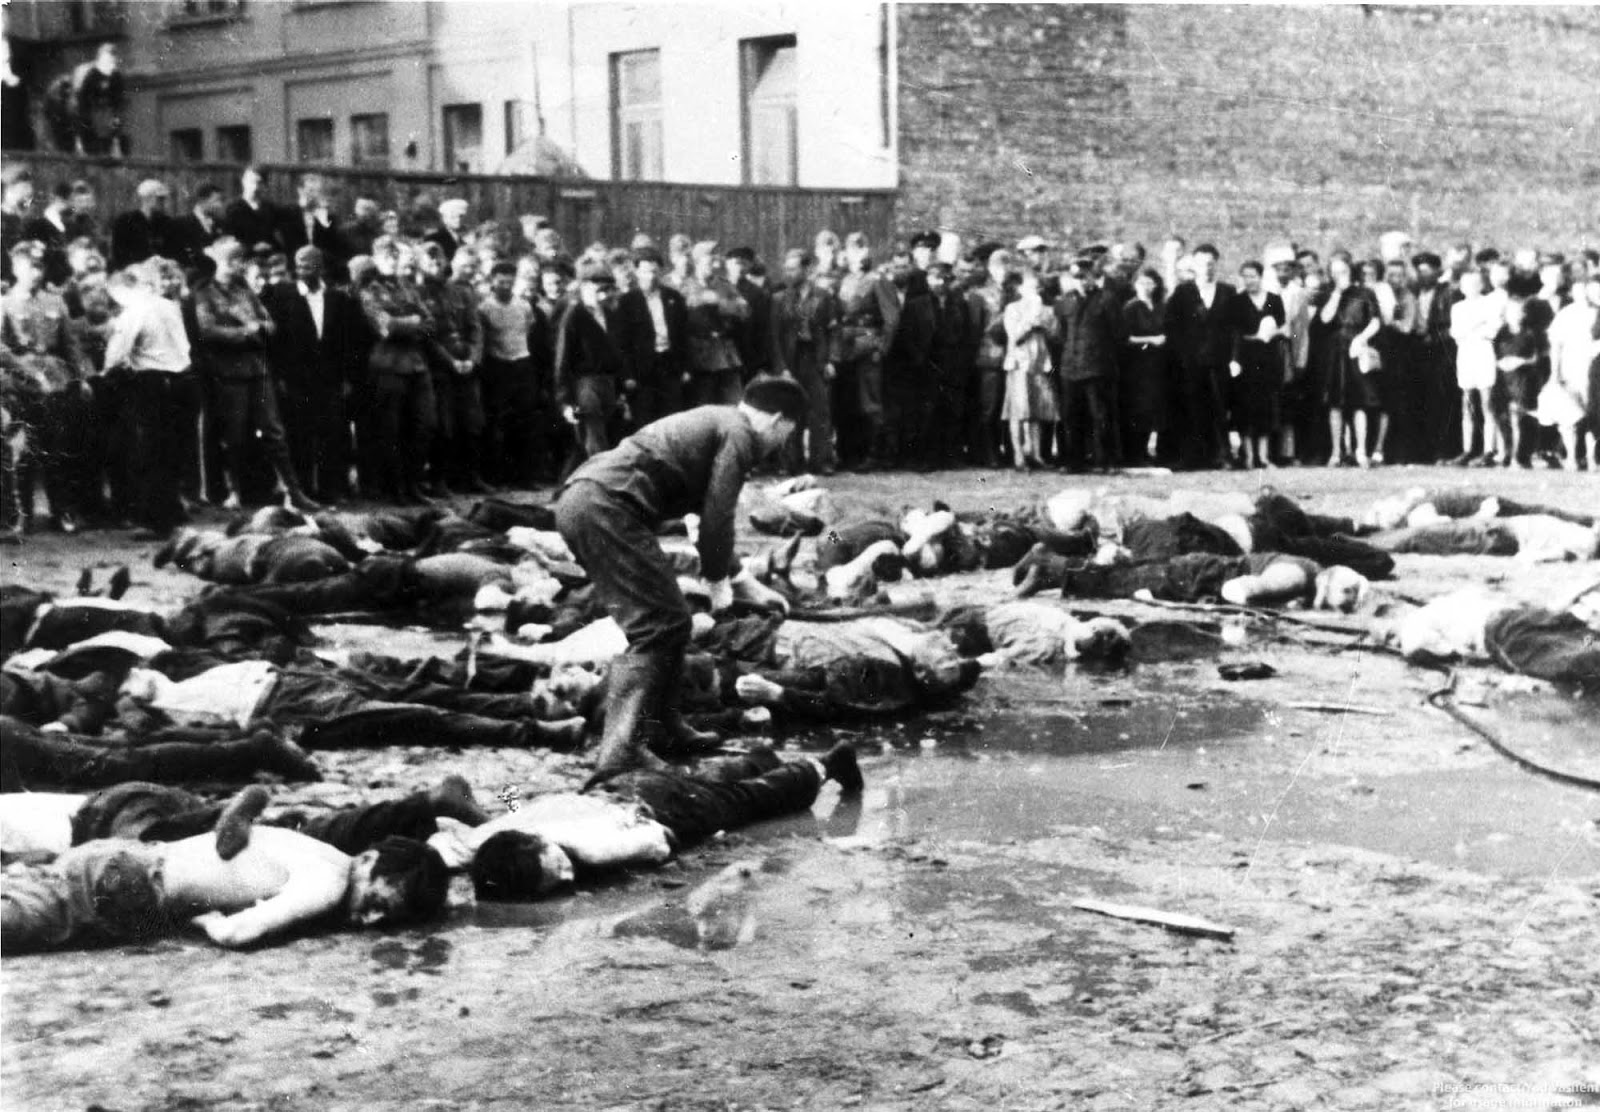 Lithuanian nationalists clubbing Jewish Lithuanians to death. Kovno (Kaunas), Lithuania, June 27, 1941.